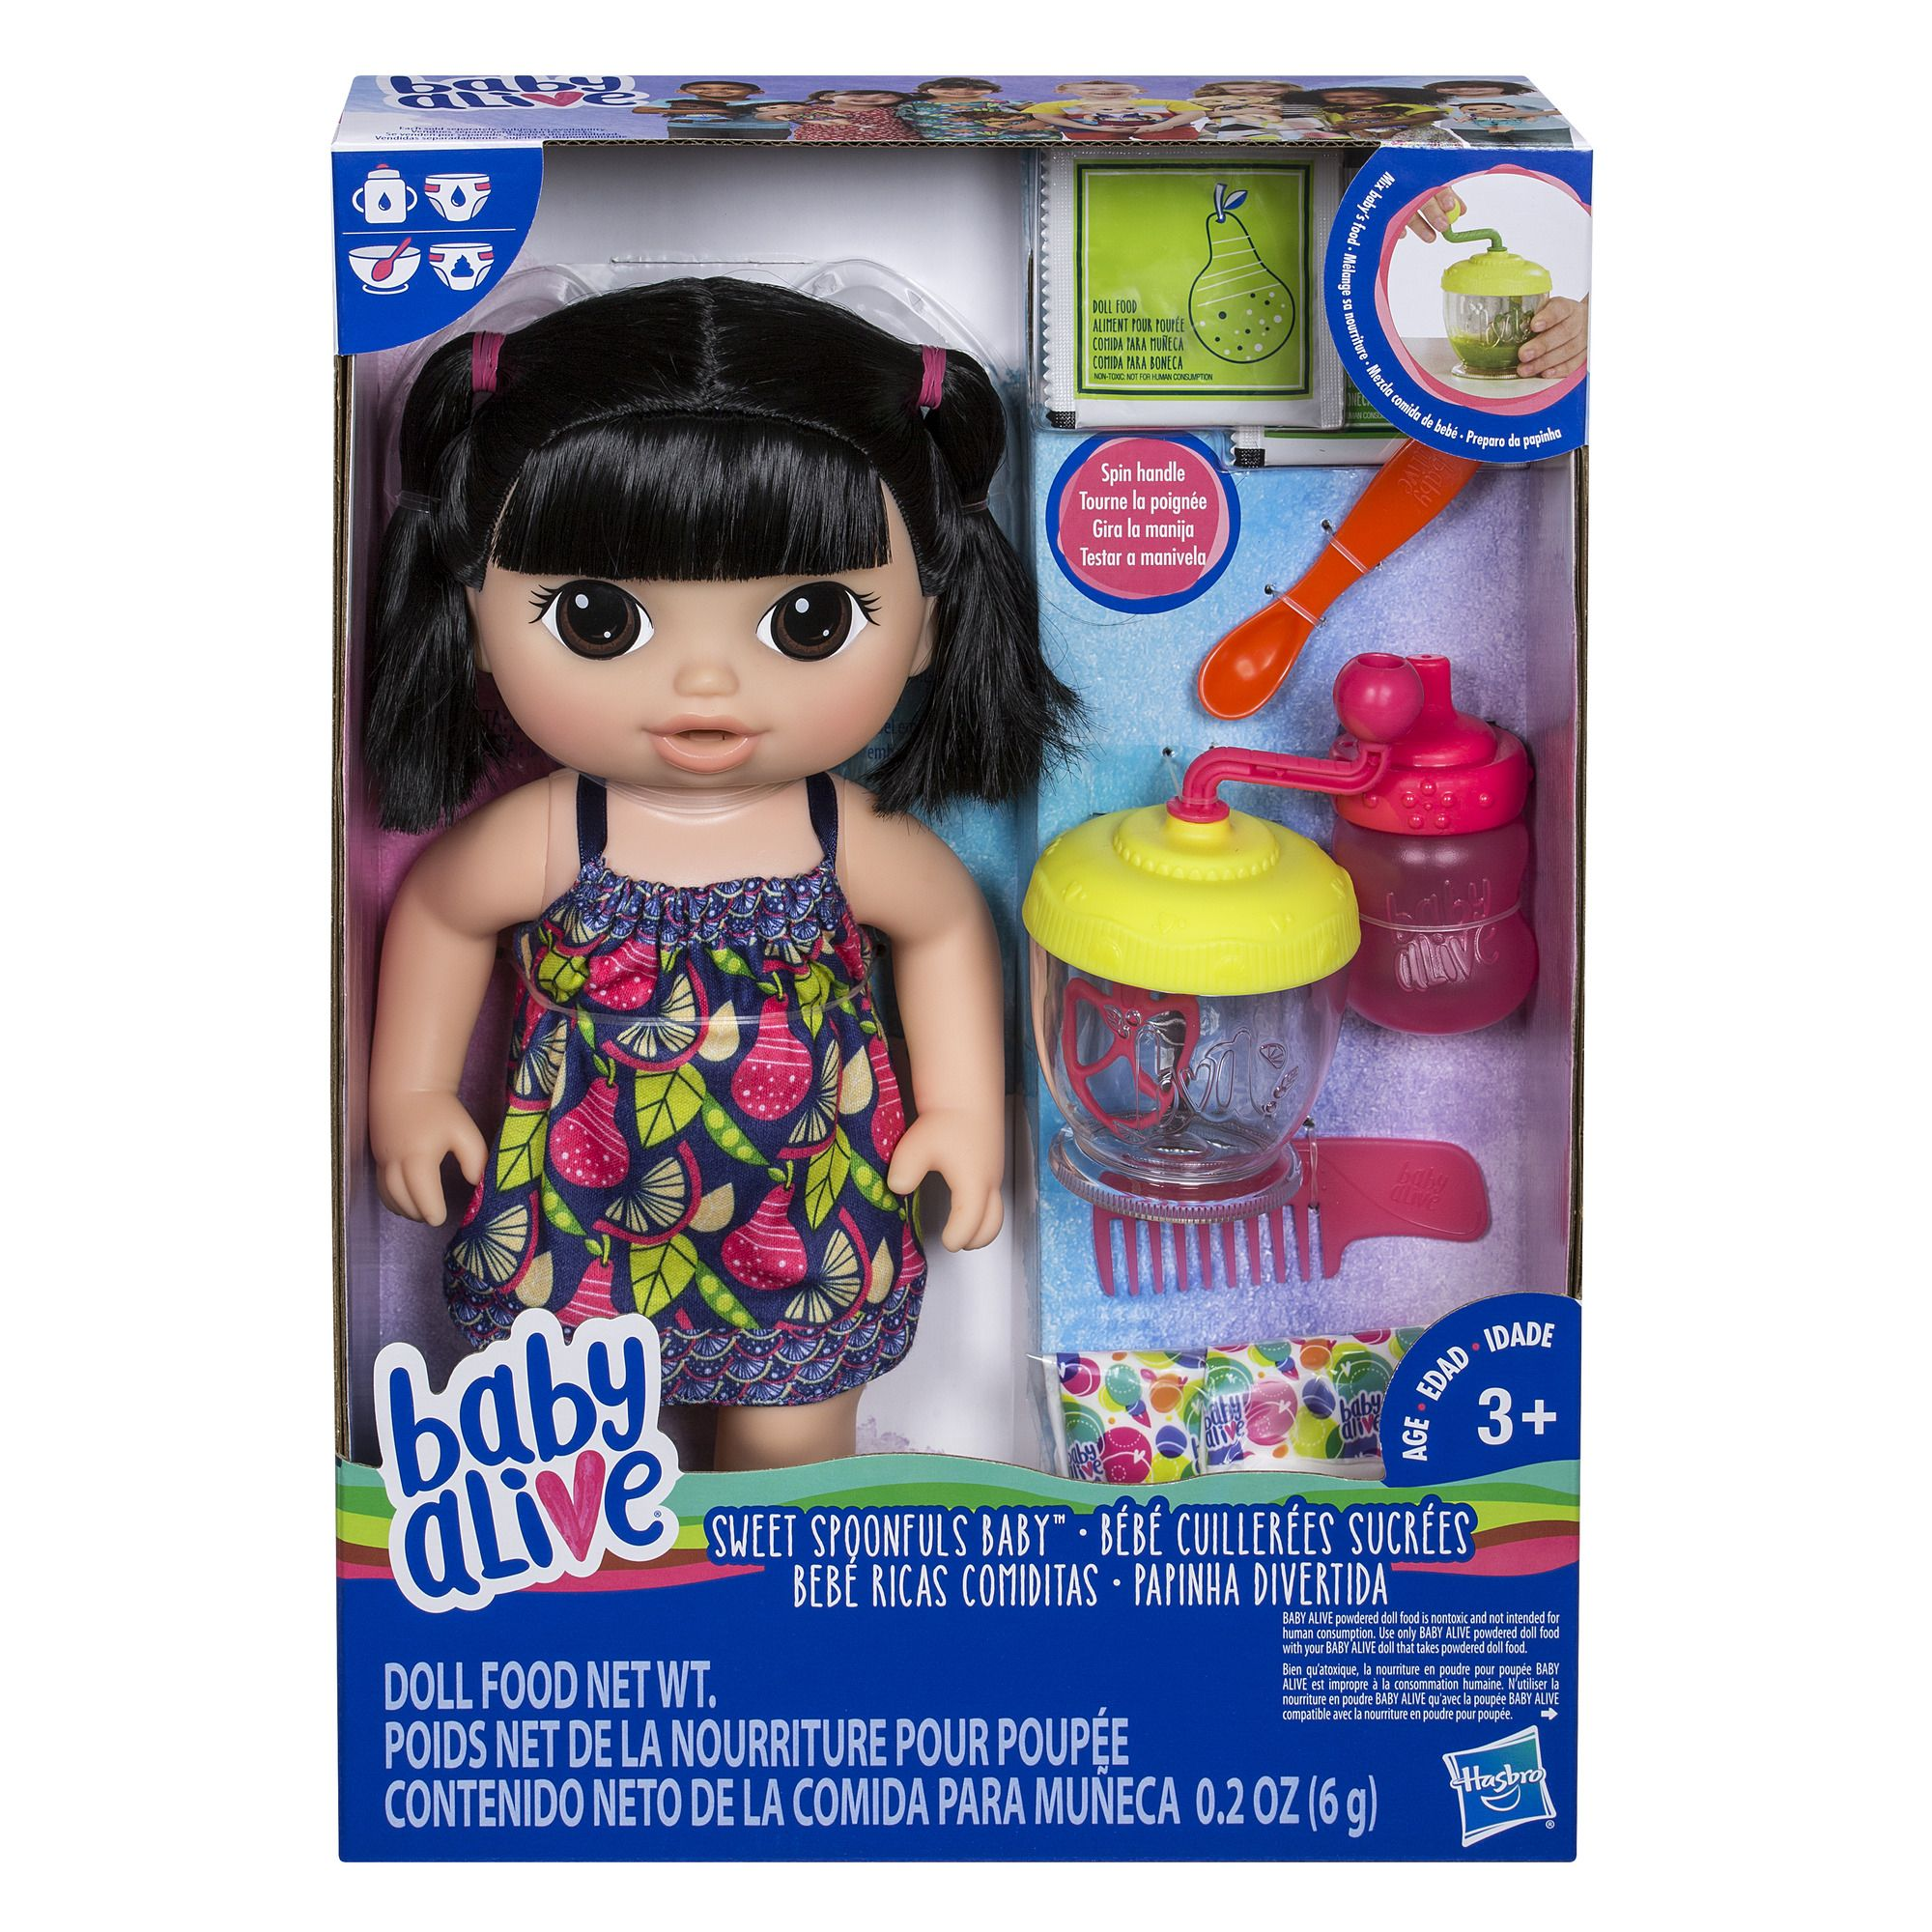 asian baby alive doll Google Search in 2020 Baby alive